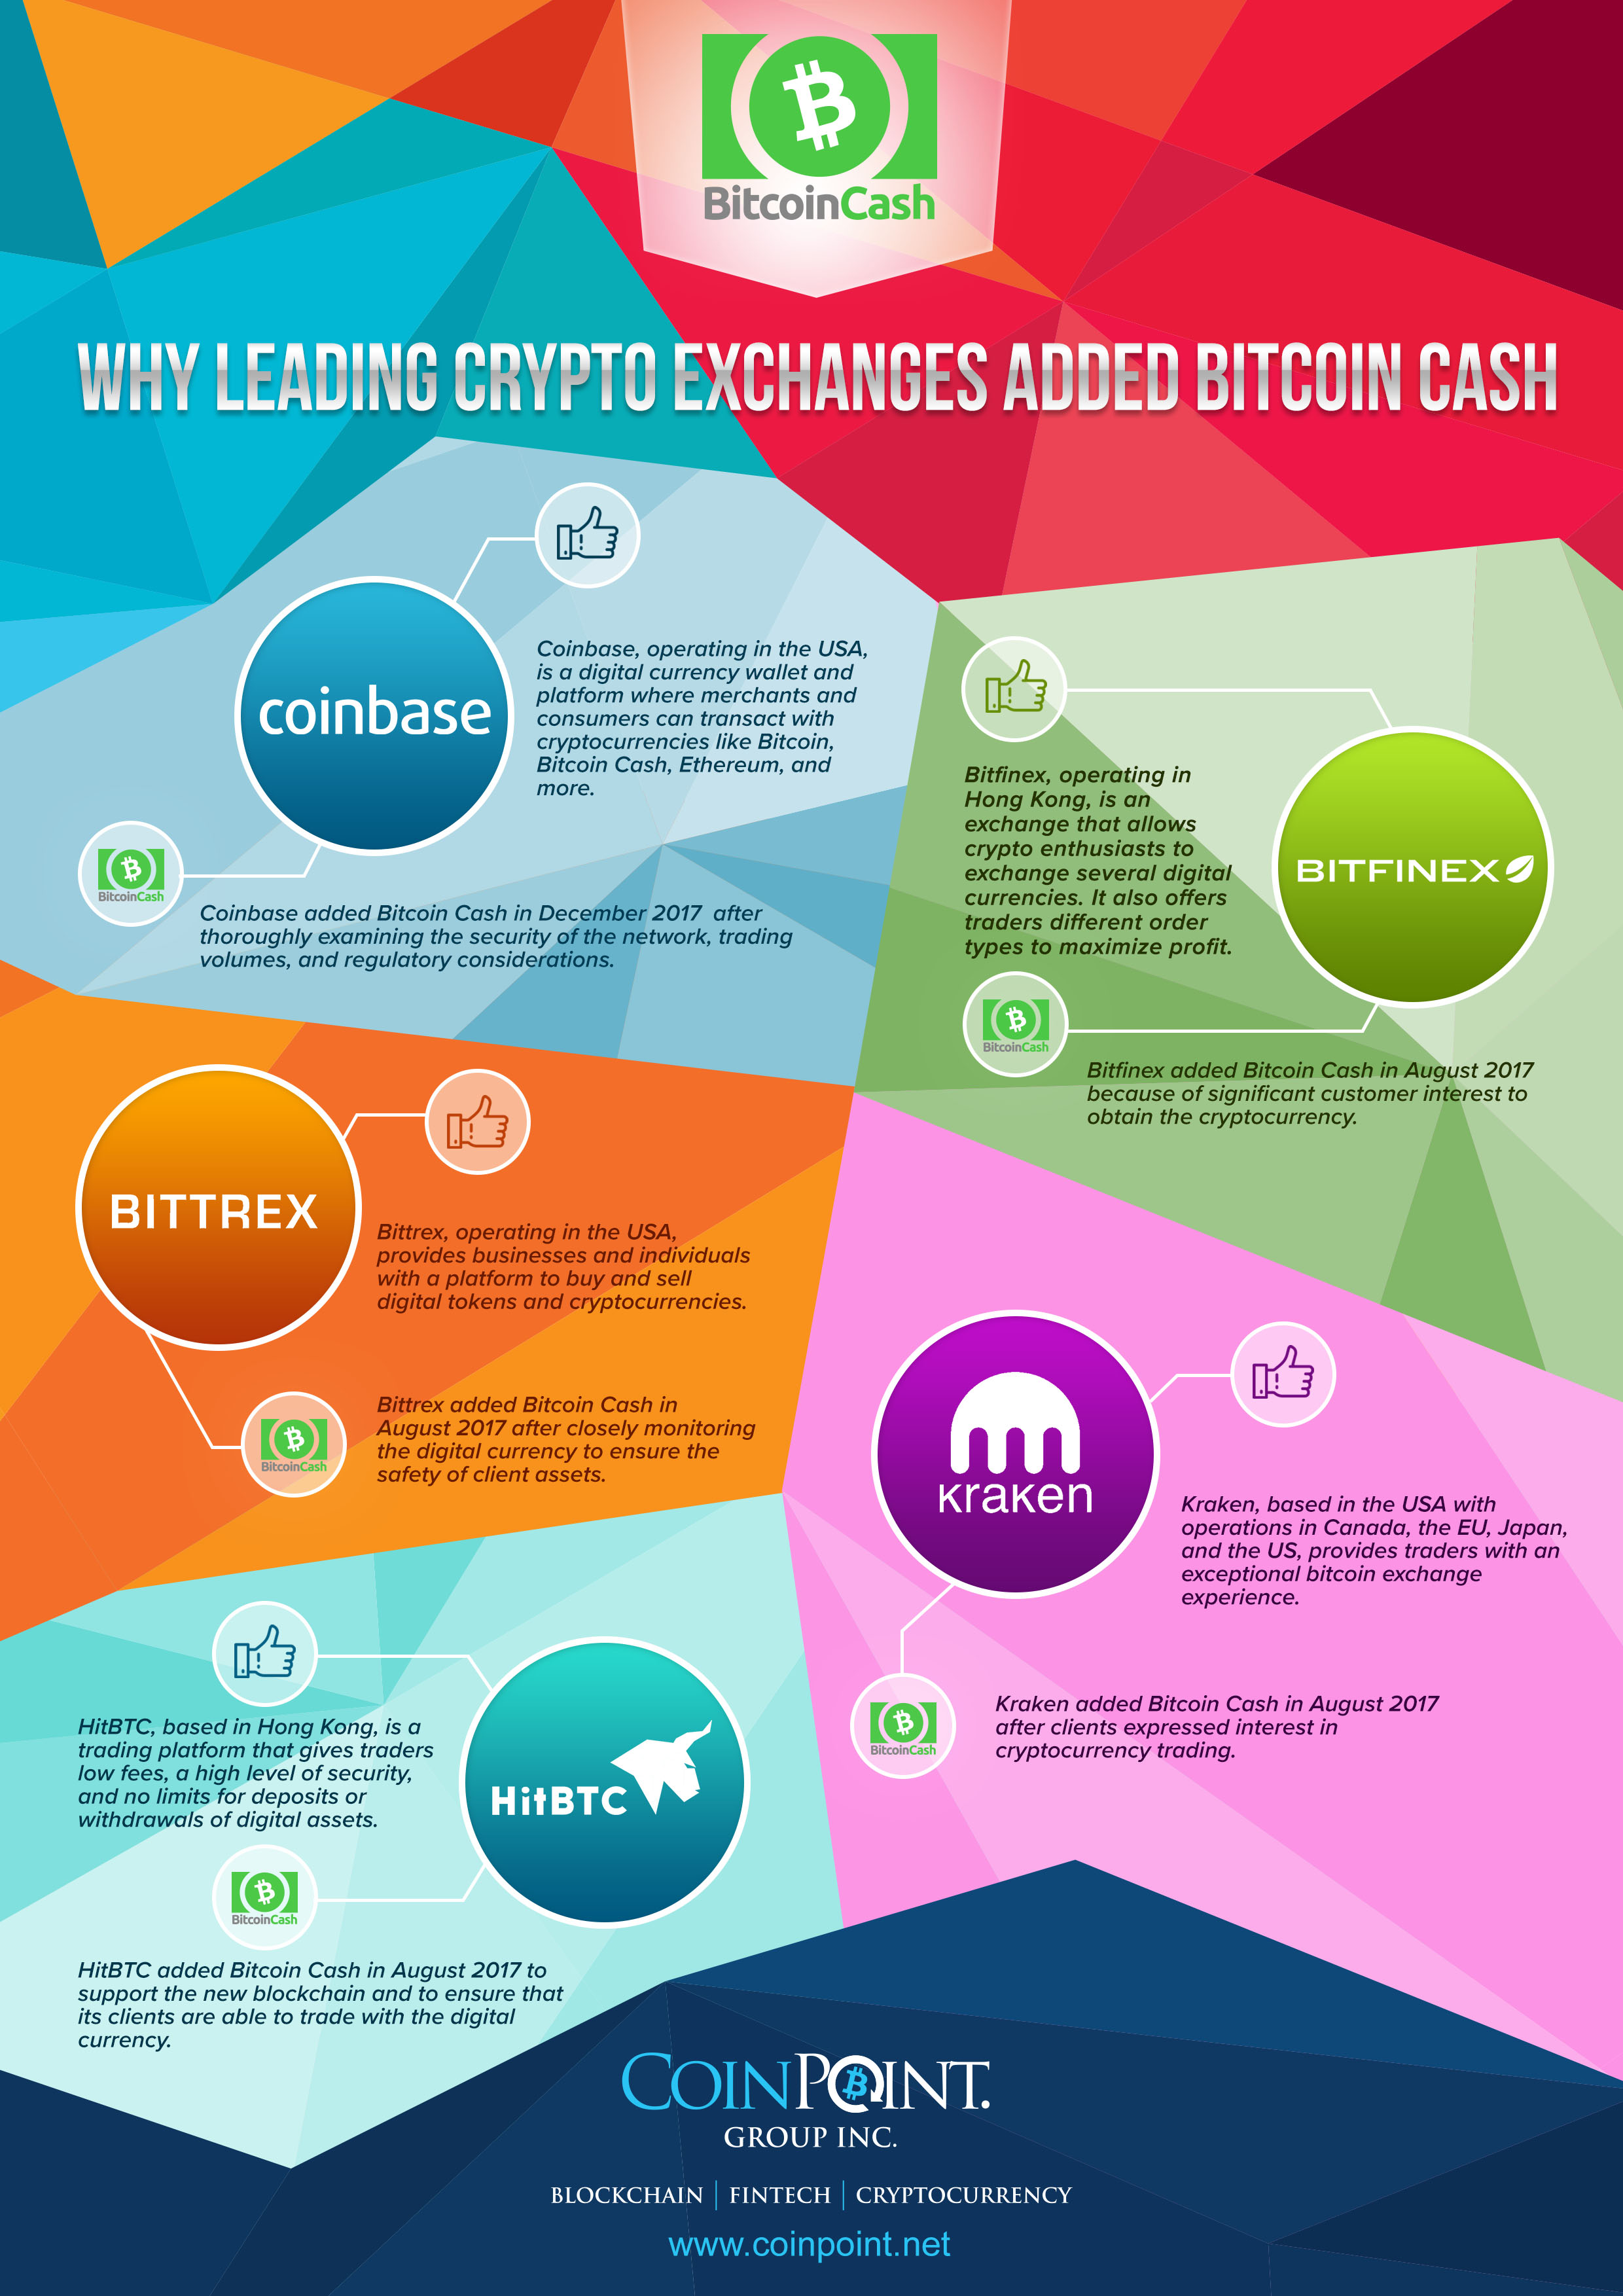 Why Leading Crypto Exchanges Added Bitcoin Cash